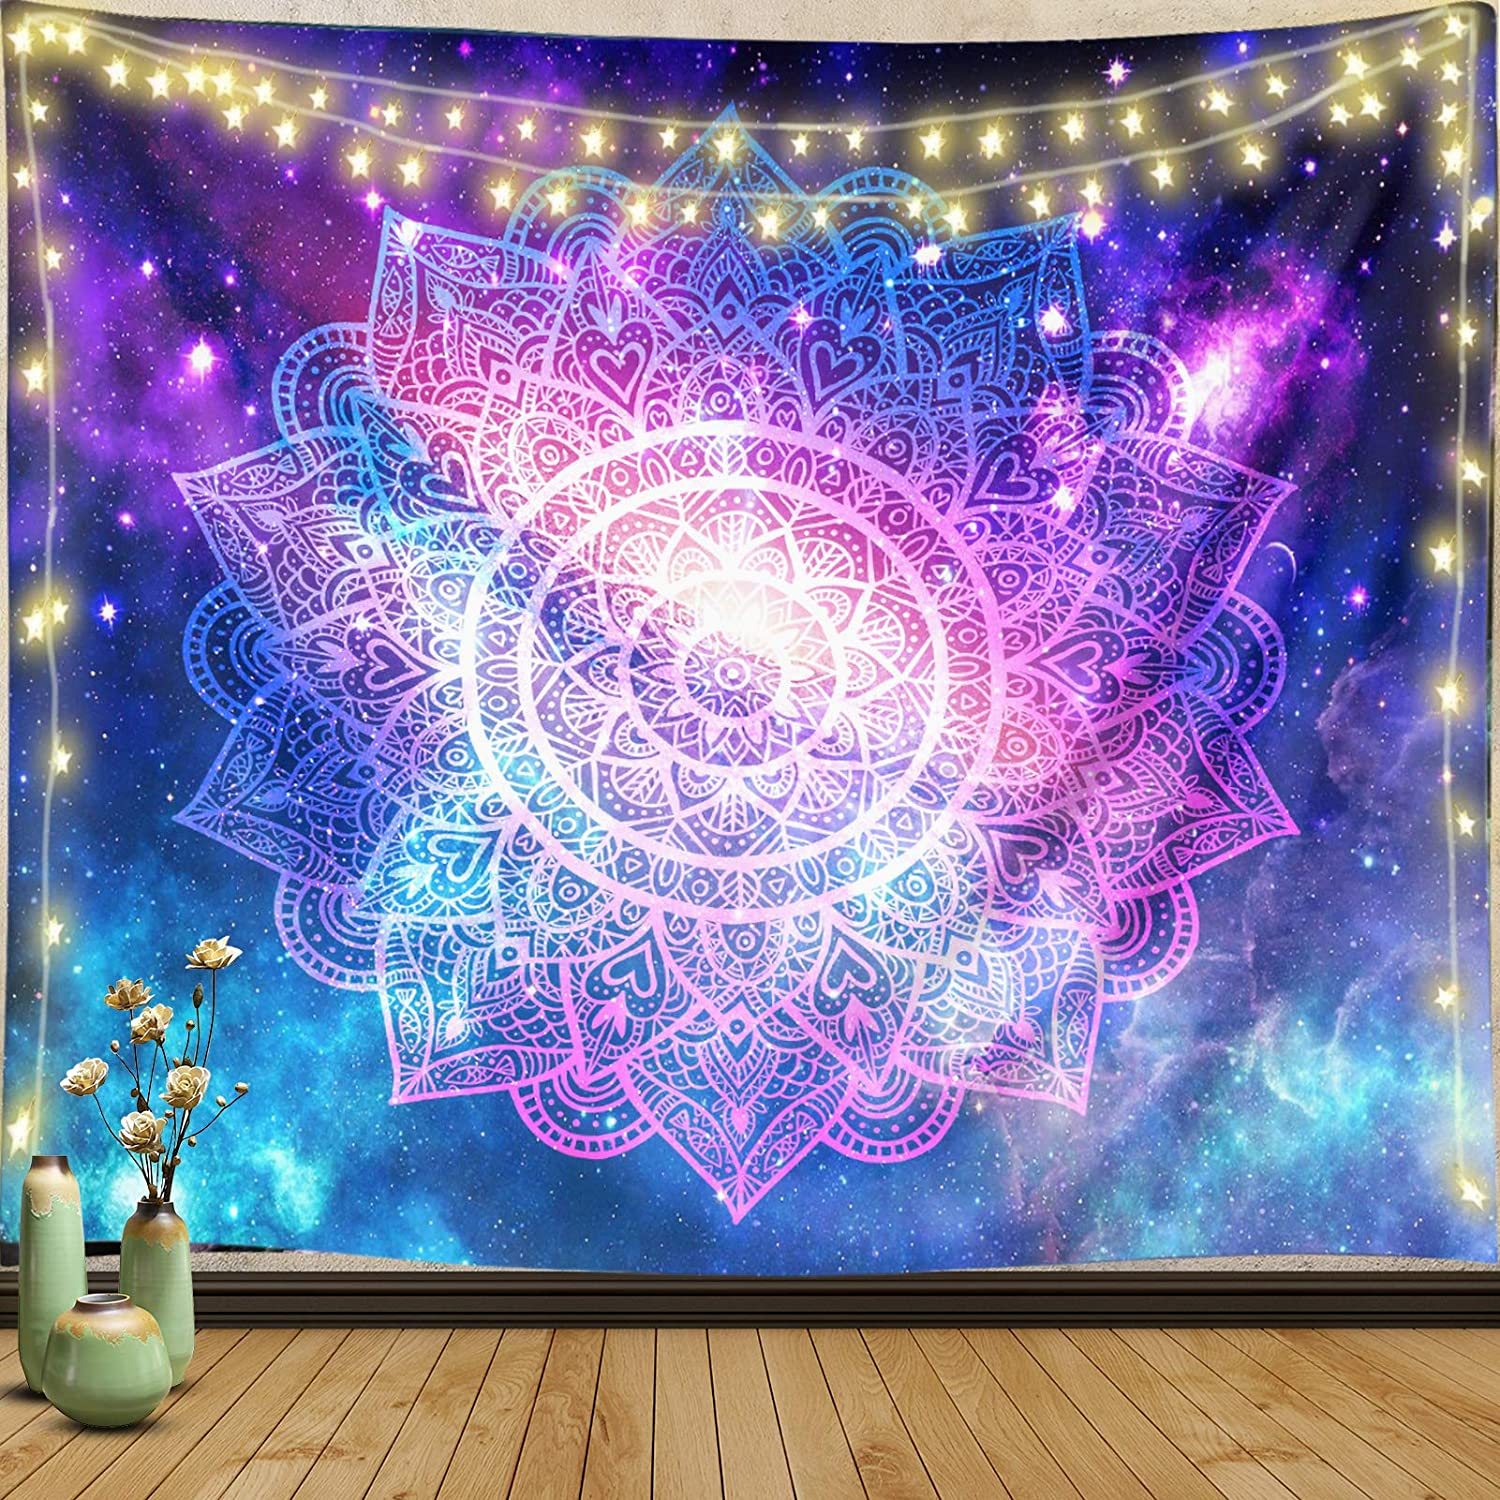 JaosWish Mandala Tapestry Wall Hanging Trippy Space Galaxy Hippie Bohemian Tapestry Wall Art Blanket Decor Tapestry for Bedroom Dorm Living Room